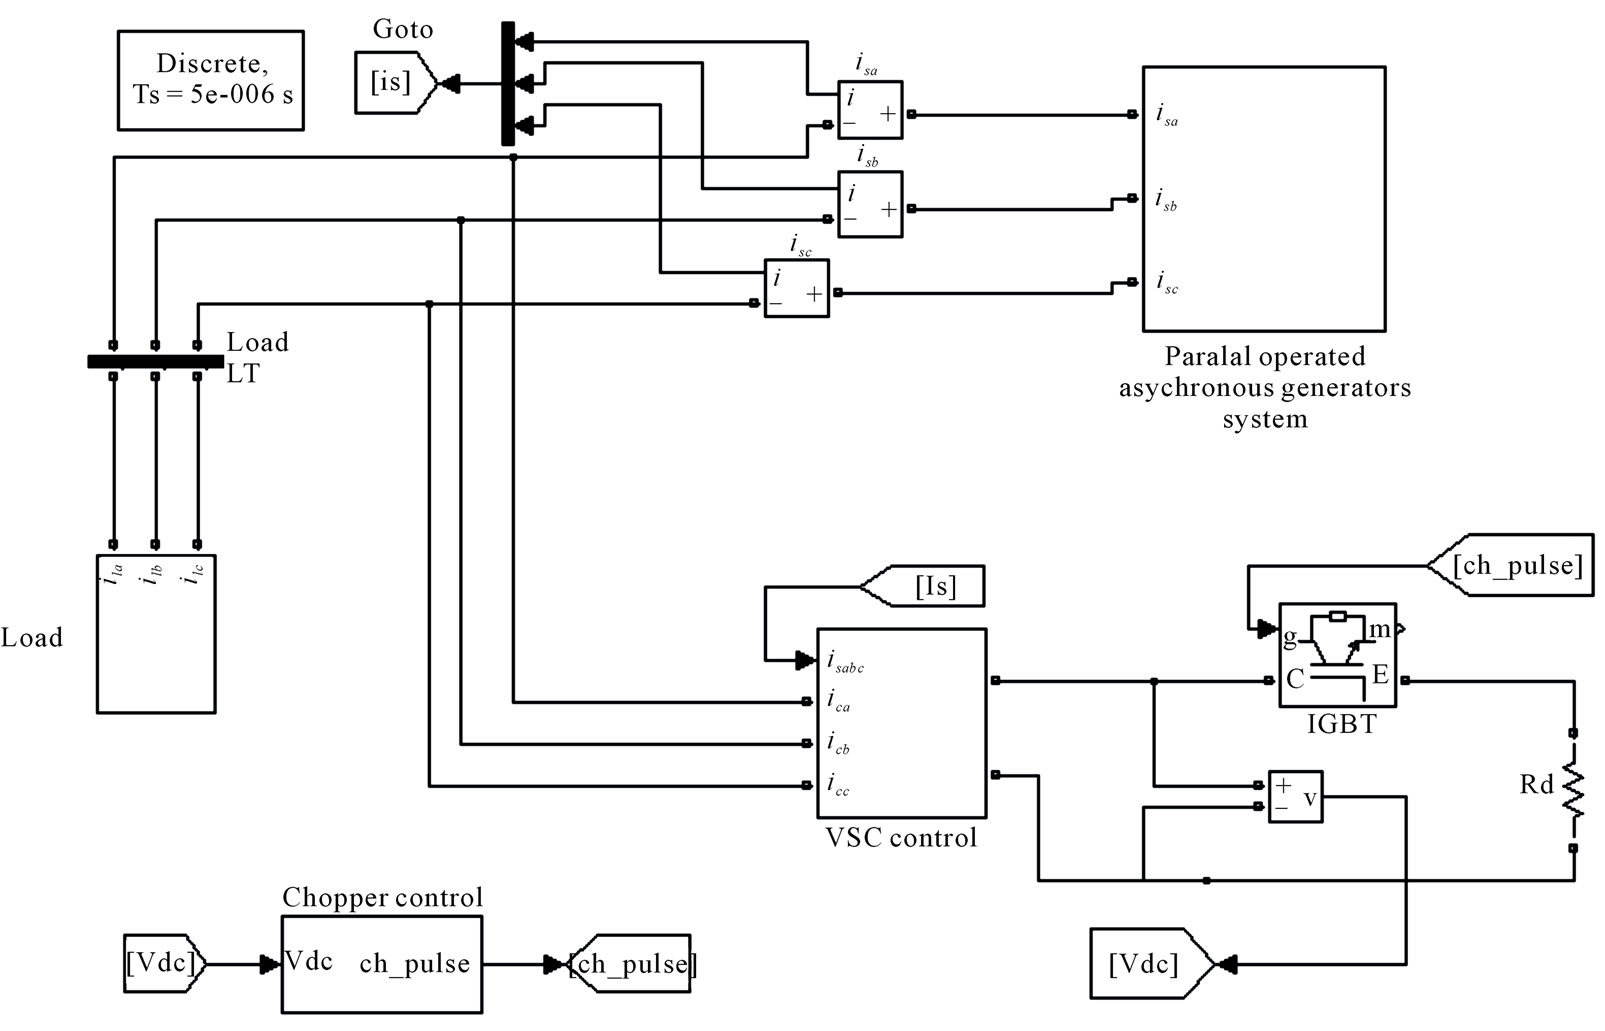 Electronic Load Controller For A Parallel Operated Isolated Fig 3 Shows Diagrams Of Simple Generator Using Disc Magnet Only Figure Matlab Based Simulation Model Proposed Electric System